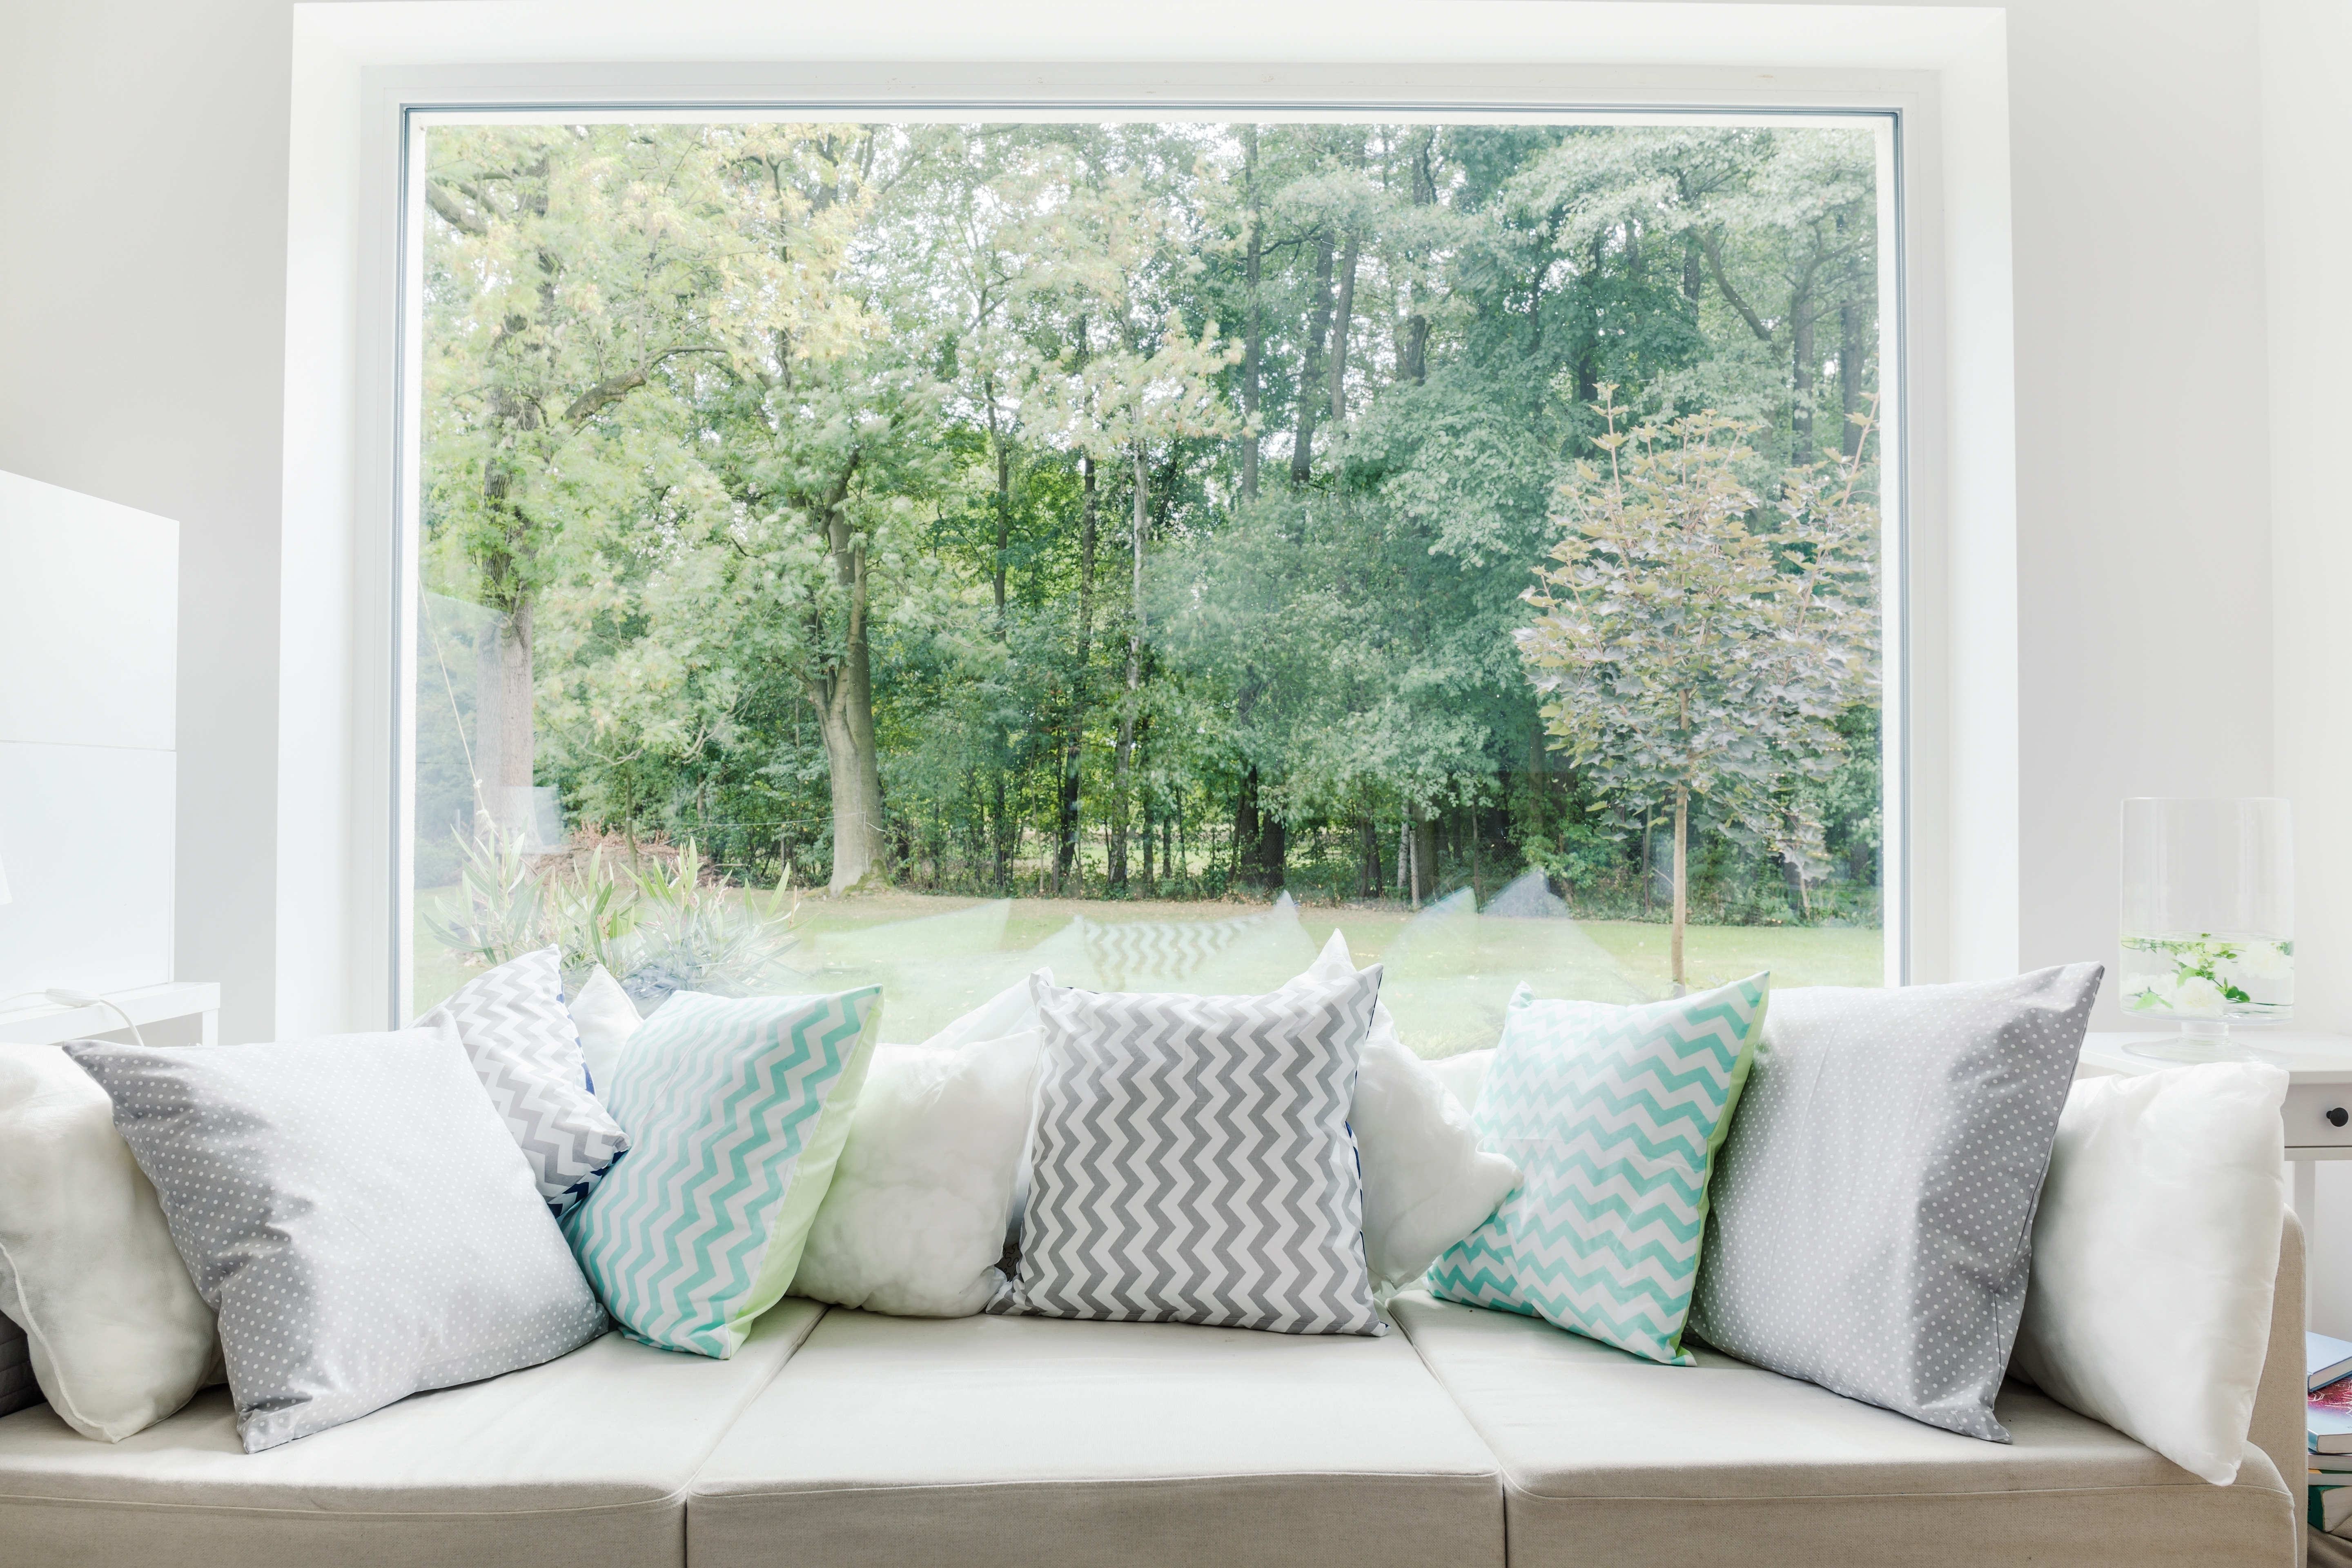 Image of relax area with large sofa and window